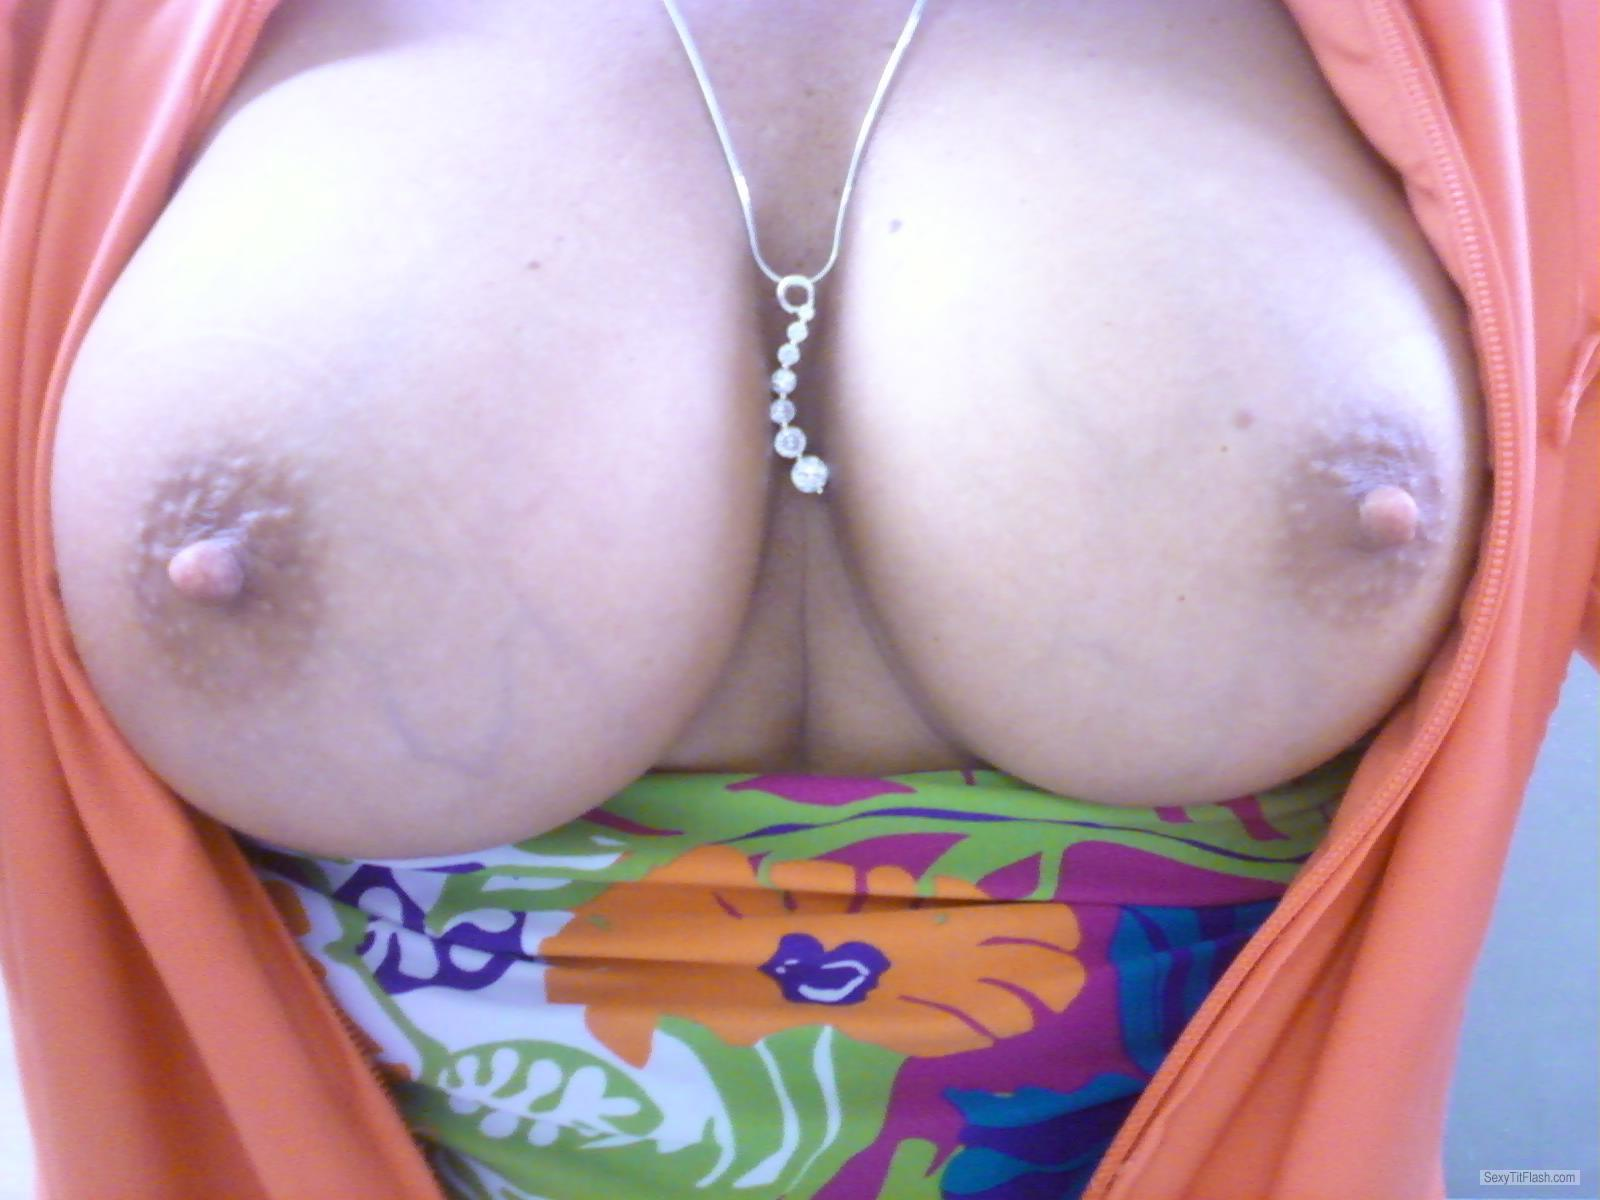 My Big Tits Office Fun